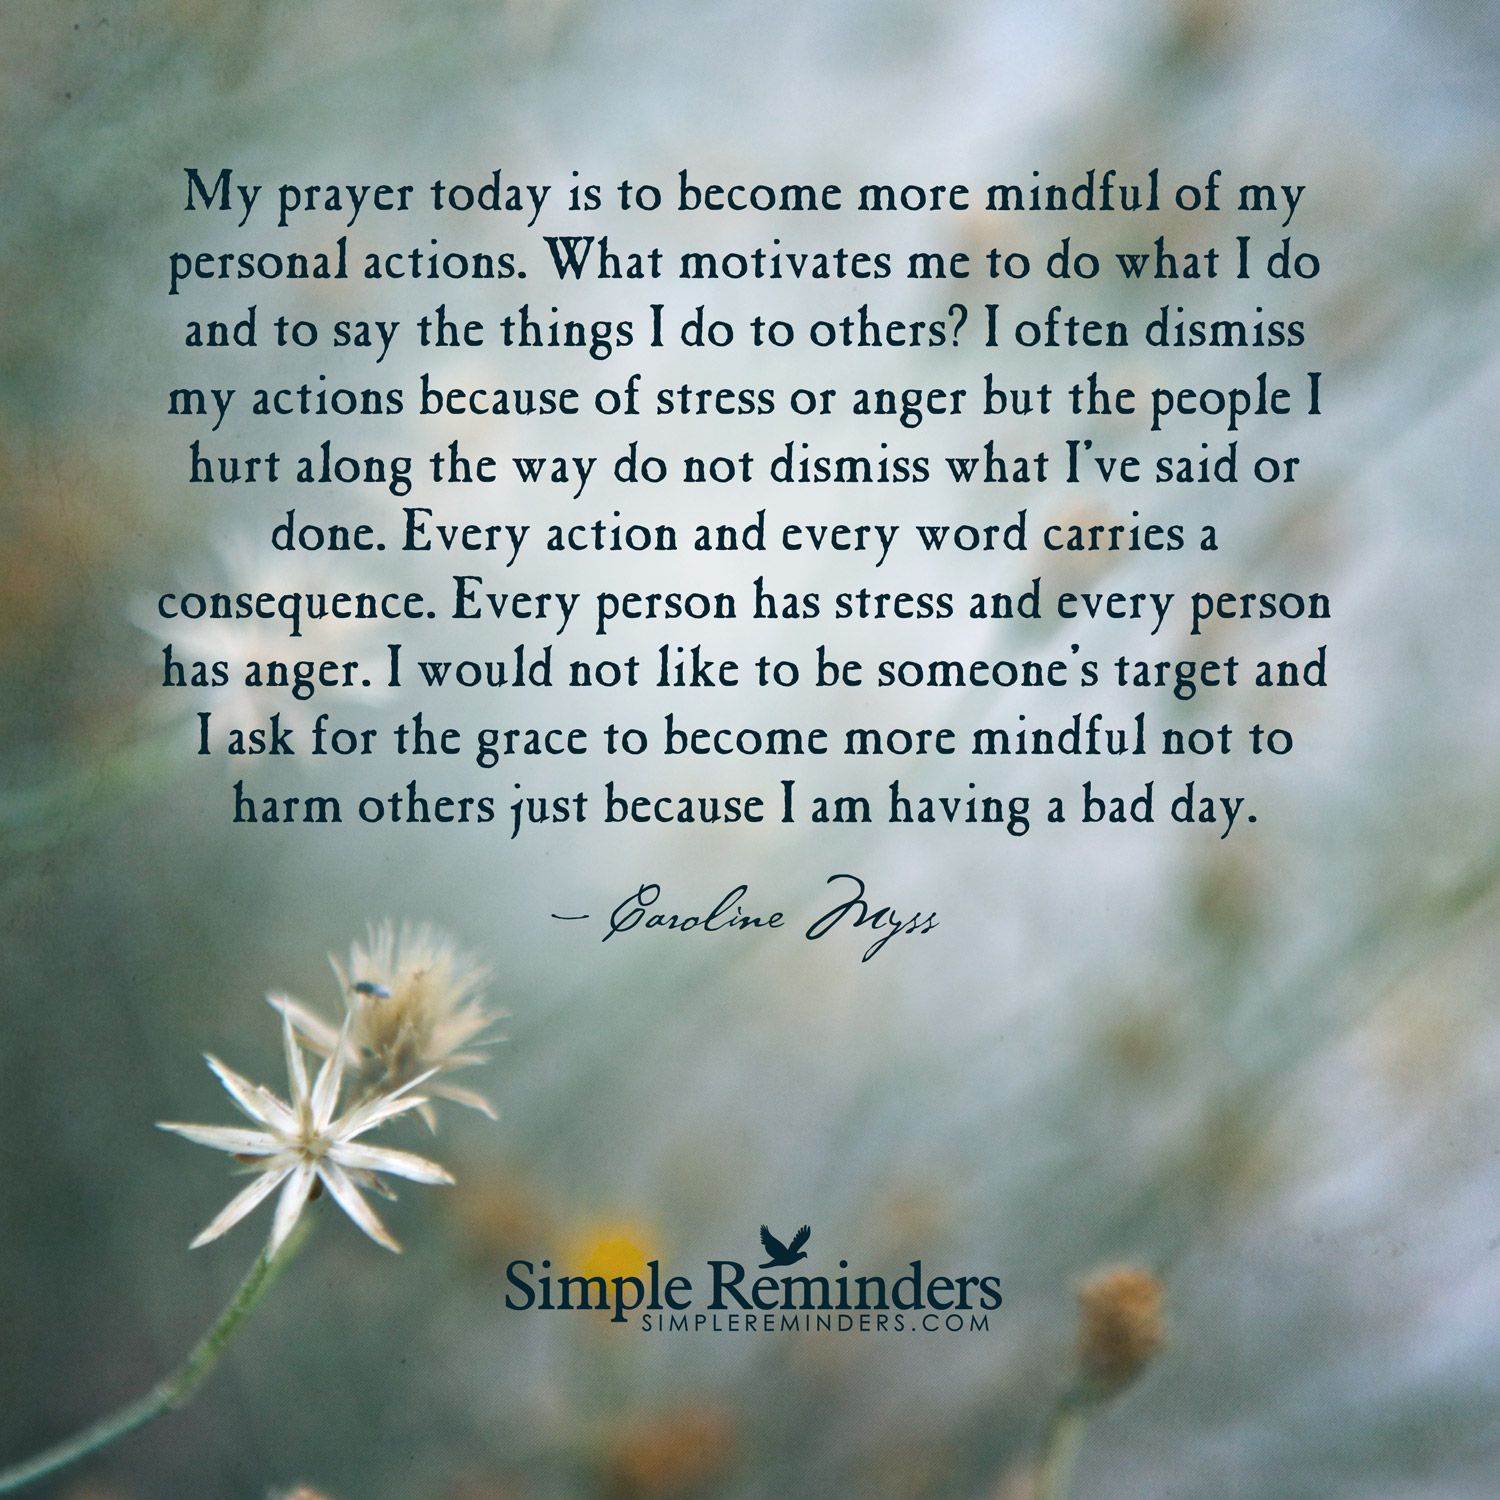 my prayer today is to become more mindful my prayer today is to my prayer today is to become more mindful of my personal actions what motivates me to do what i do and to say the things i do to others